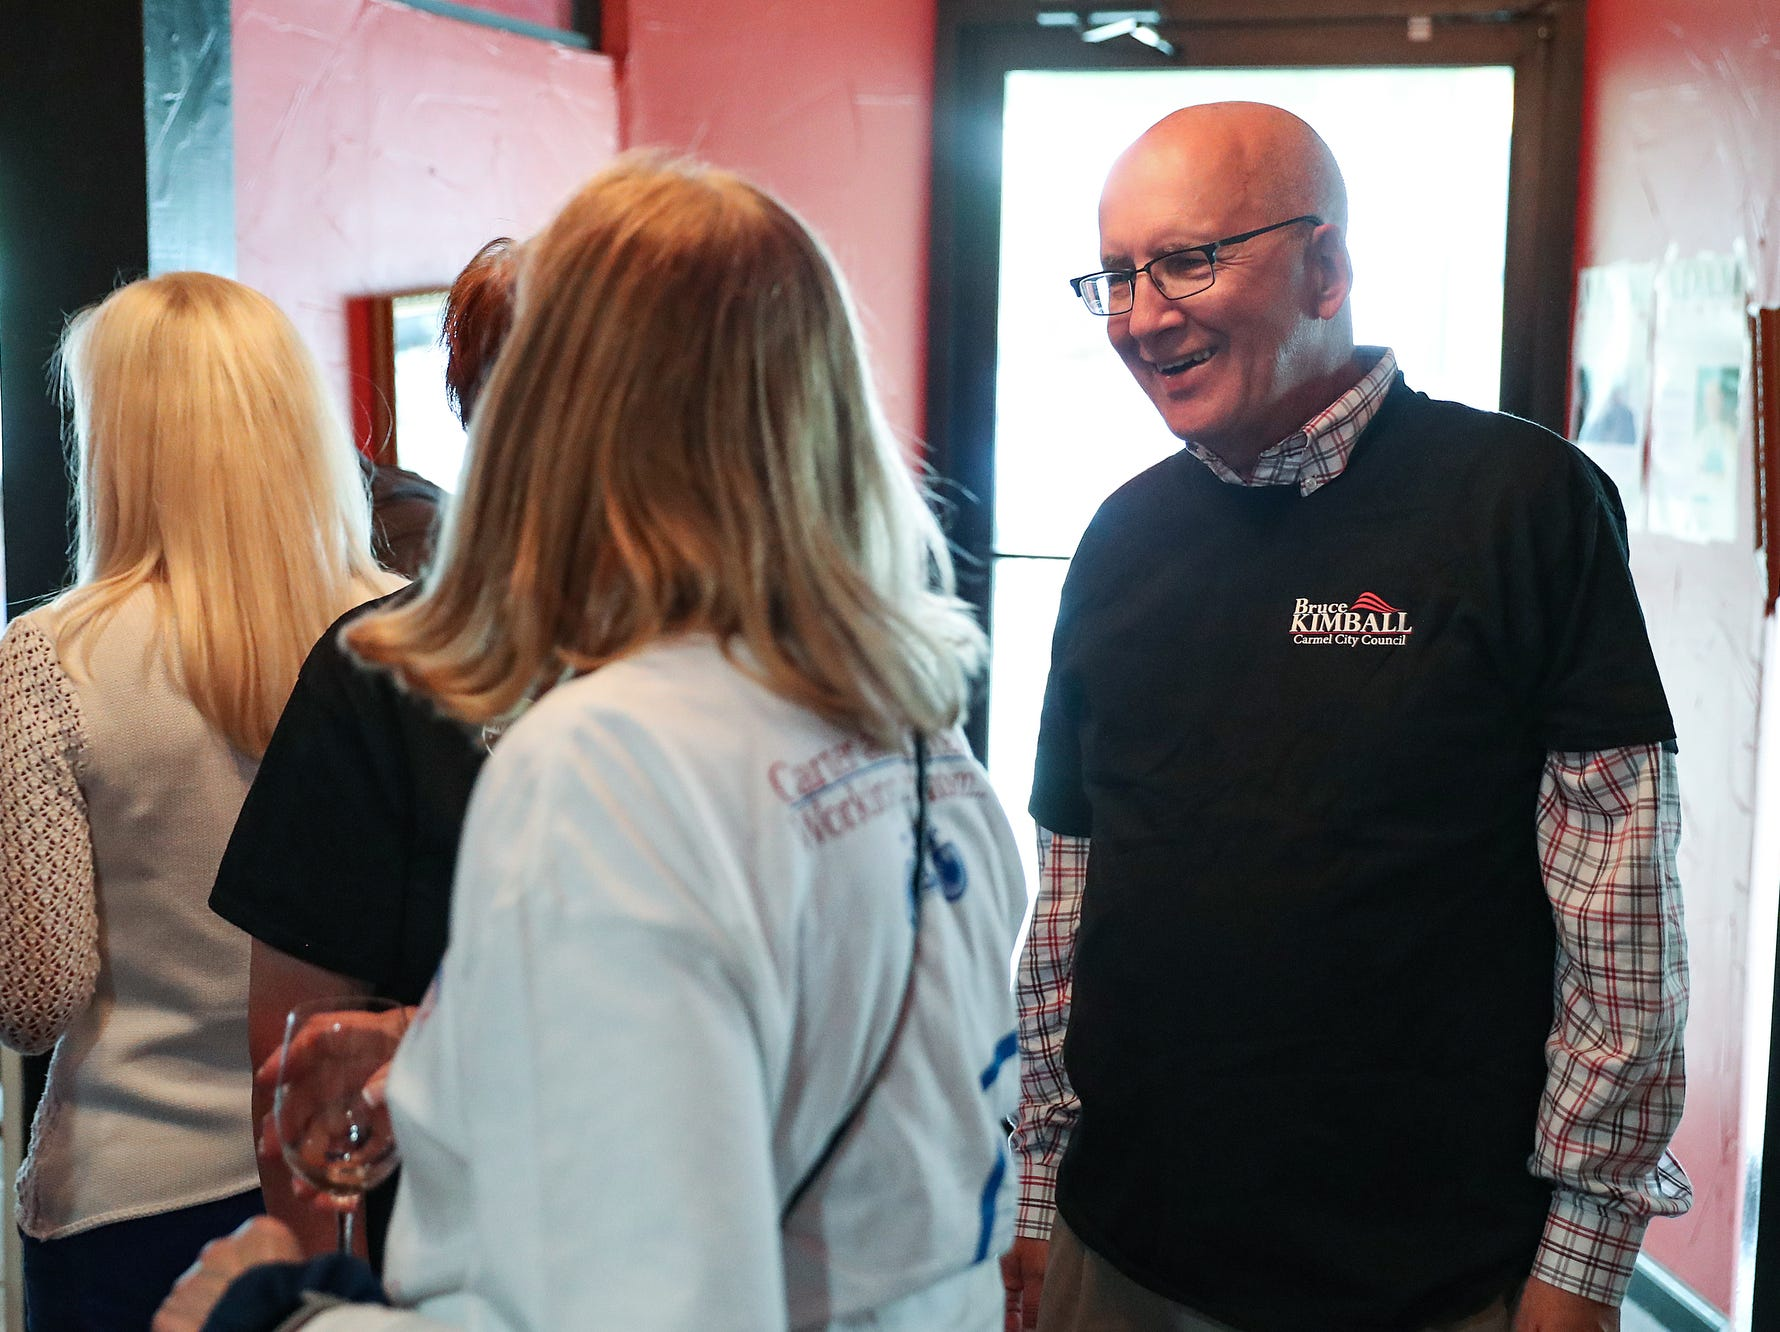 Carmel city council member Bruce Kimball greets supporters and friends at an election watch party for Carmel Republican candidates at DonatelloÕs Italian Restaurant in Carmel, Ind., Tuesday, May 7, 2019.